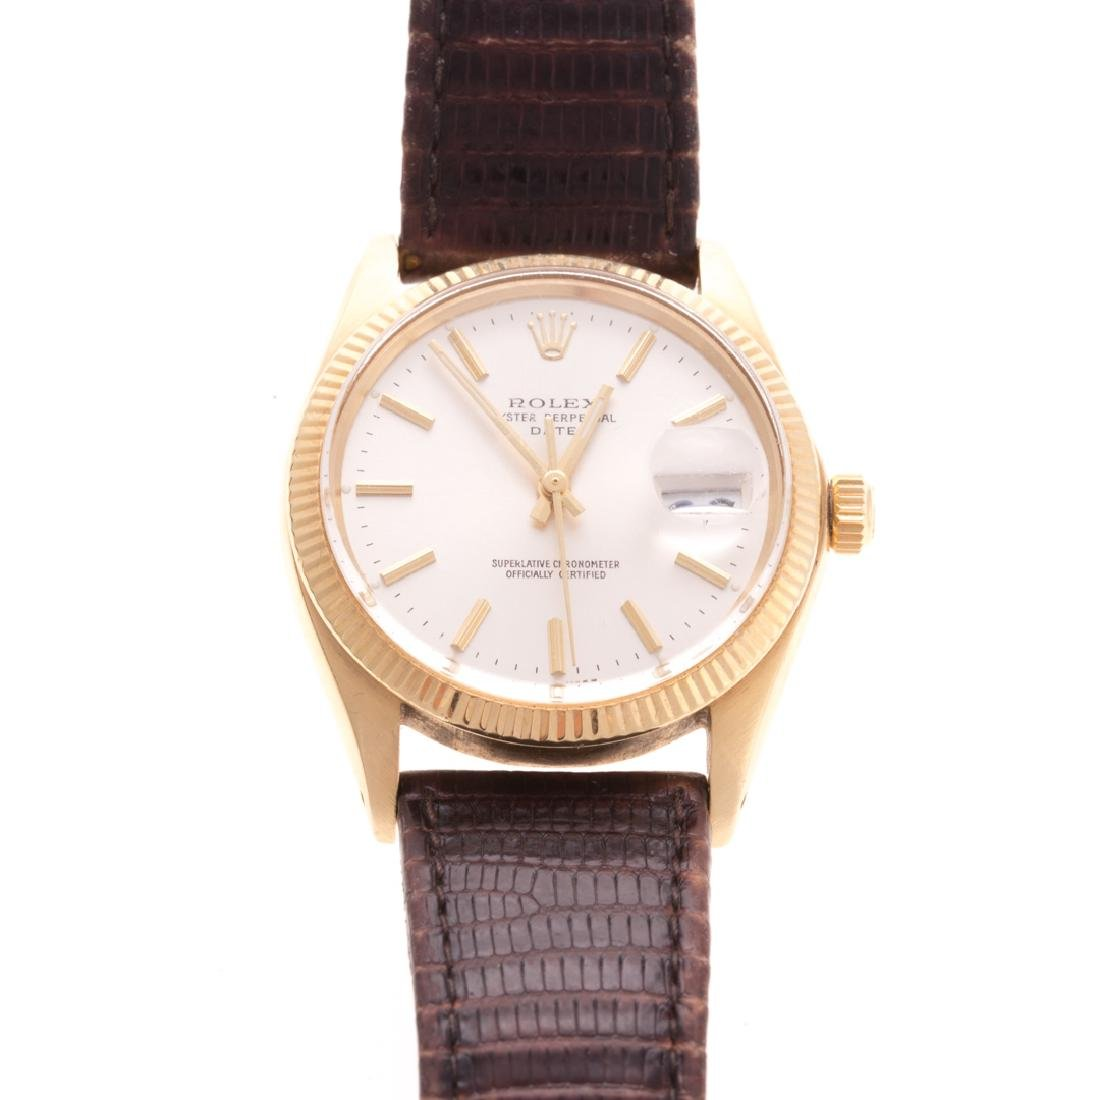 A Gent's 14K Rolex Oyster Perpetual Date Watch